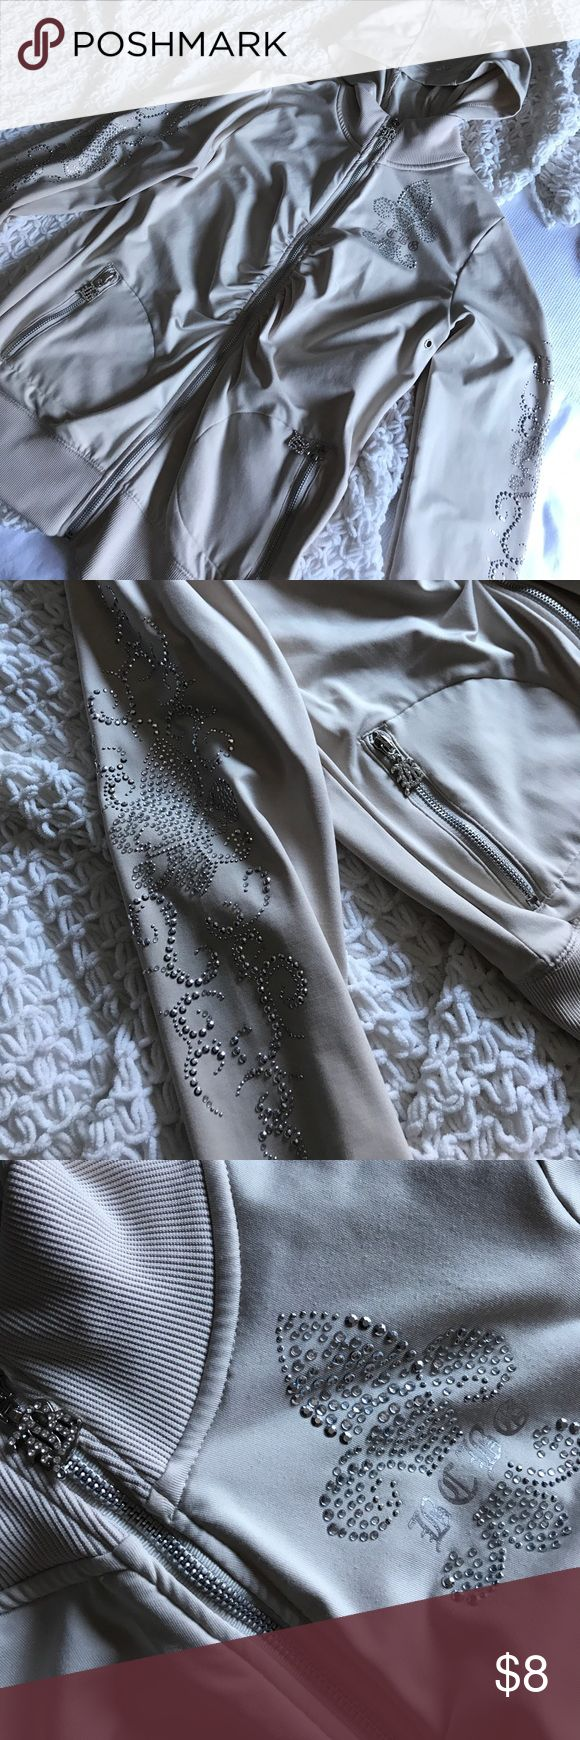 BCBG zip up embellished hoodie. Like new. Embellished BCBG MAXAZERIA hoodie. Wore once, still in brand new condition. Cream/taupe color BCBGMaxAzria Tops Sweatshirts & Hoodies